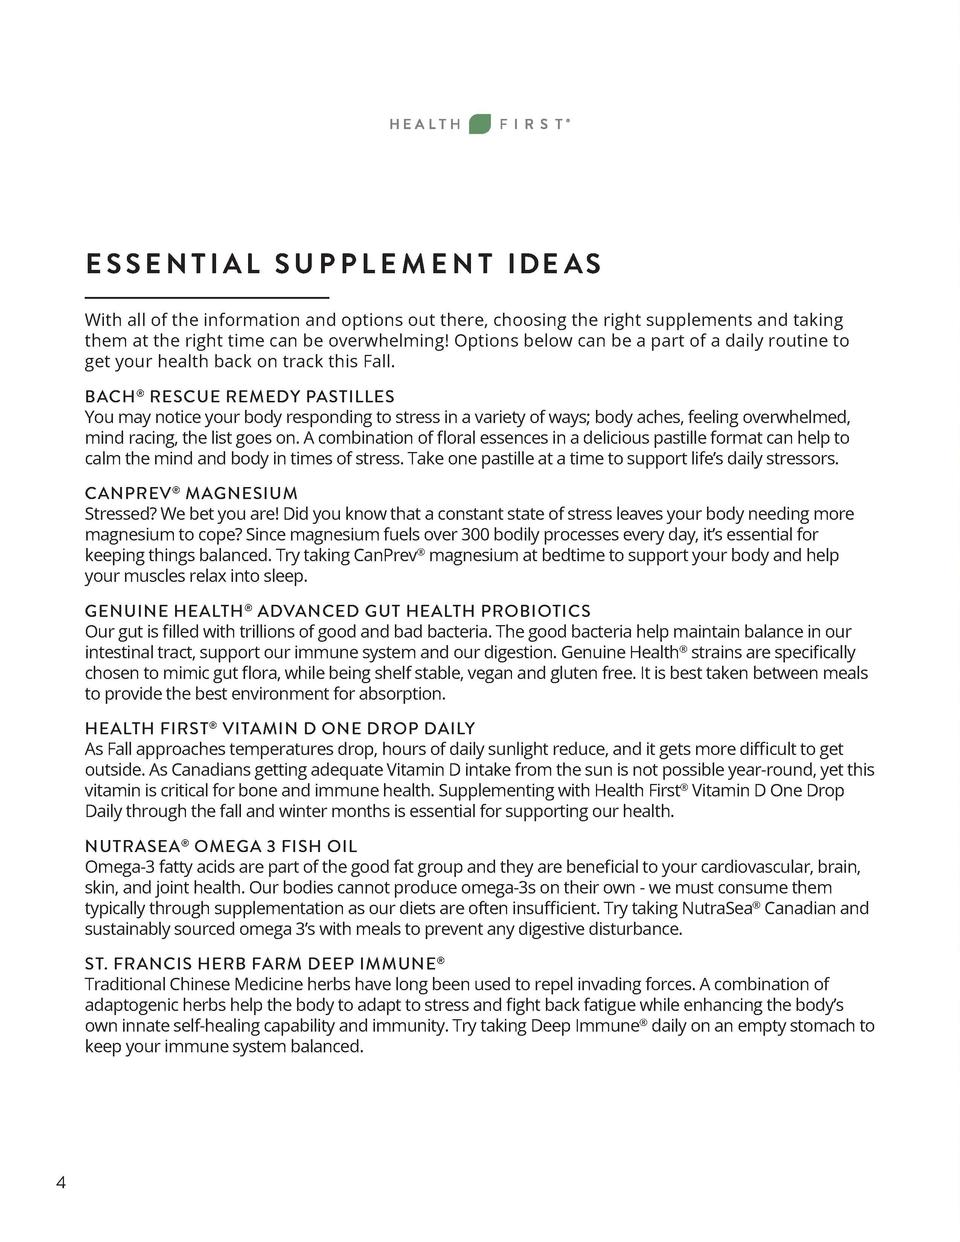 E S S E N T I A L S U P P L E M E N T IDE A S With all of the information and options out there, choosing the right supple...